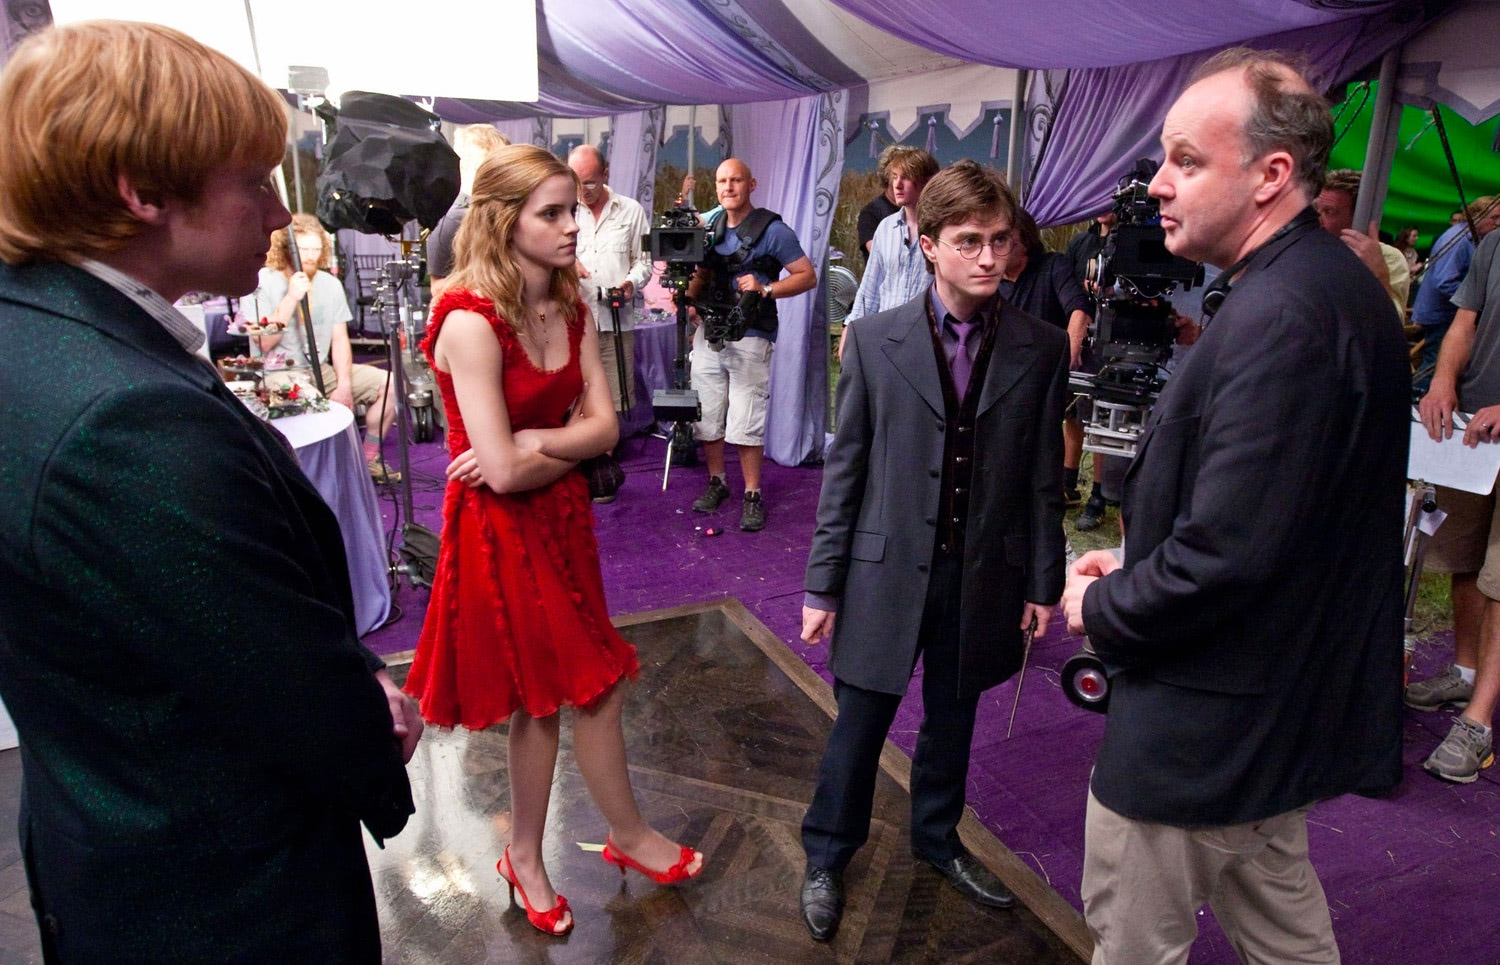 David Yates directing at the wedding